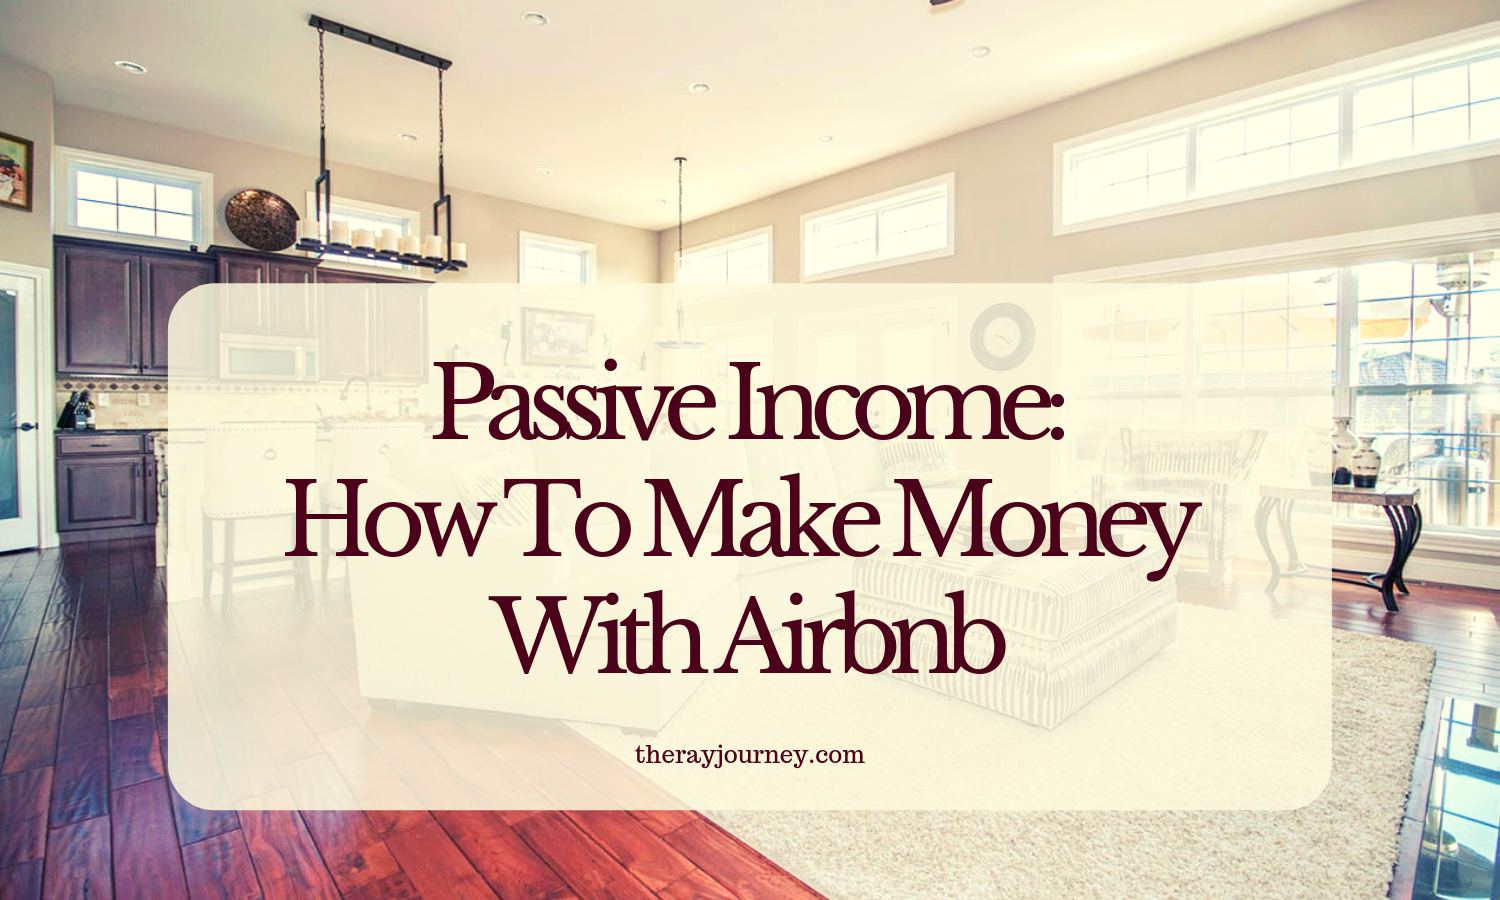 Passive income how to make money with airbnb photo by Sarah J